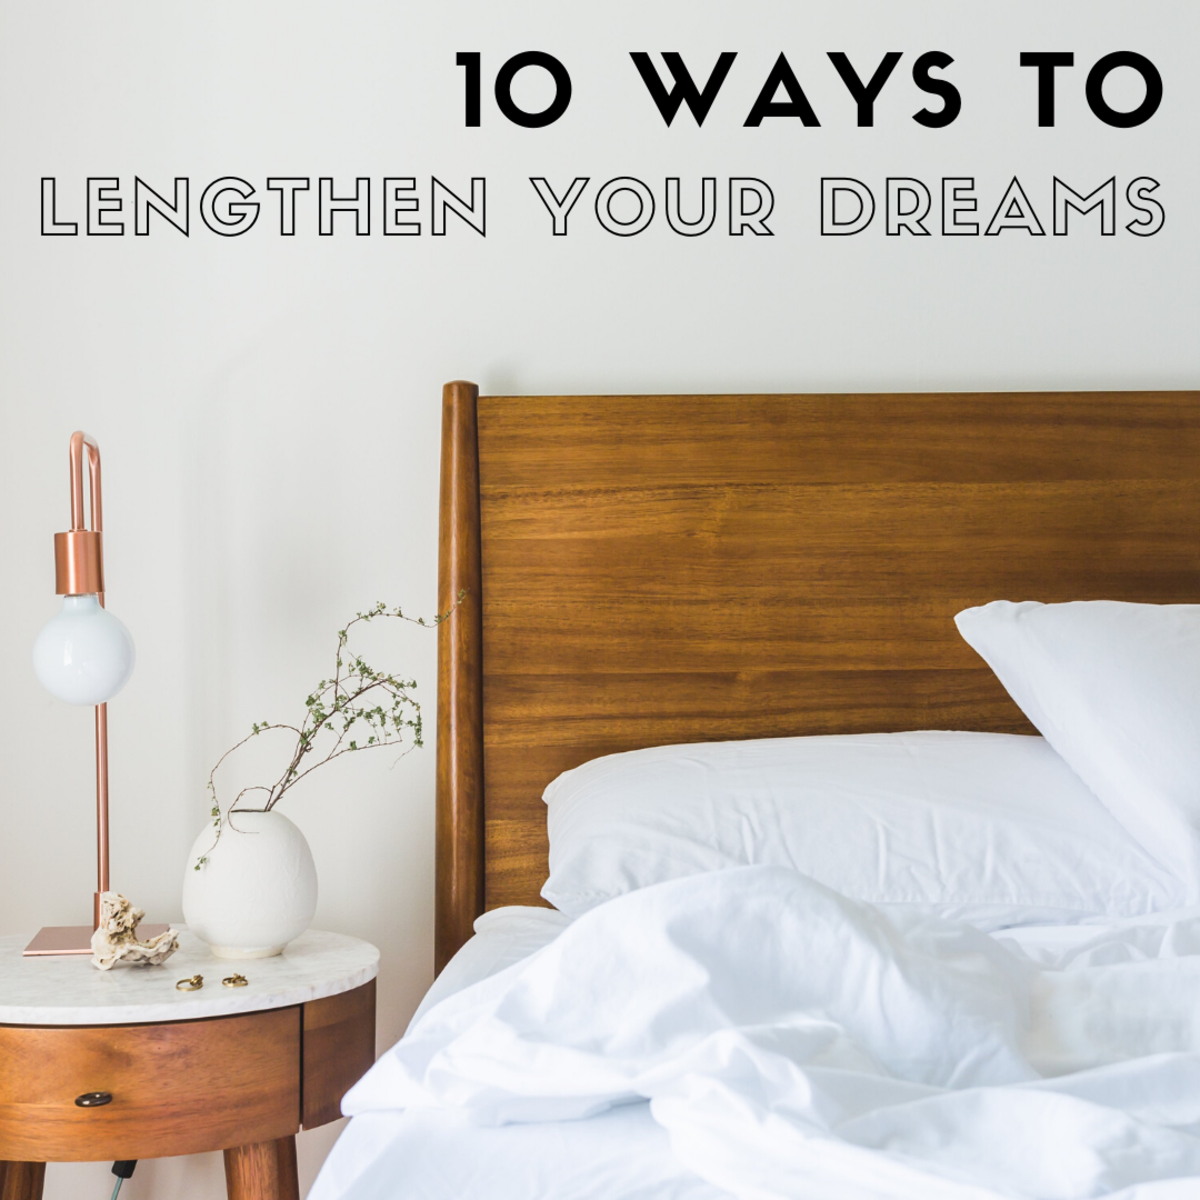 Find out how to lengthen your dreams!